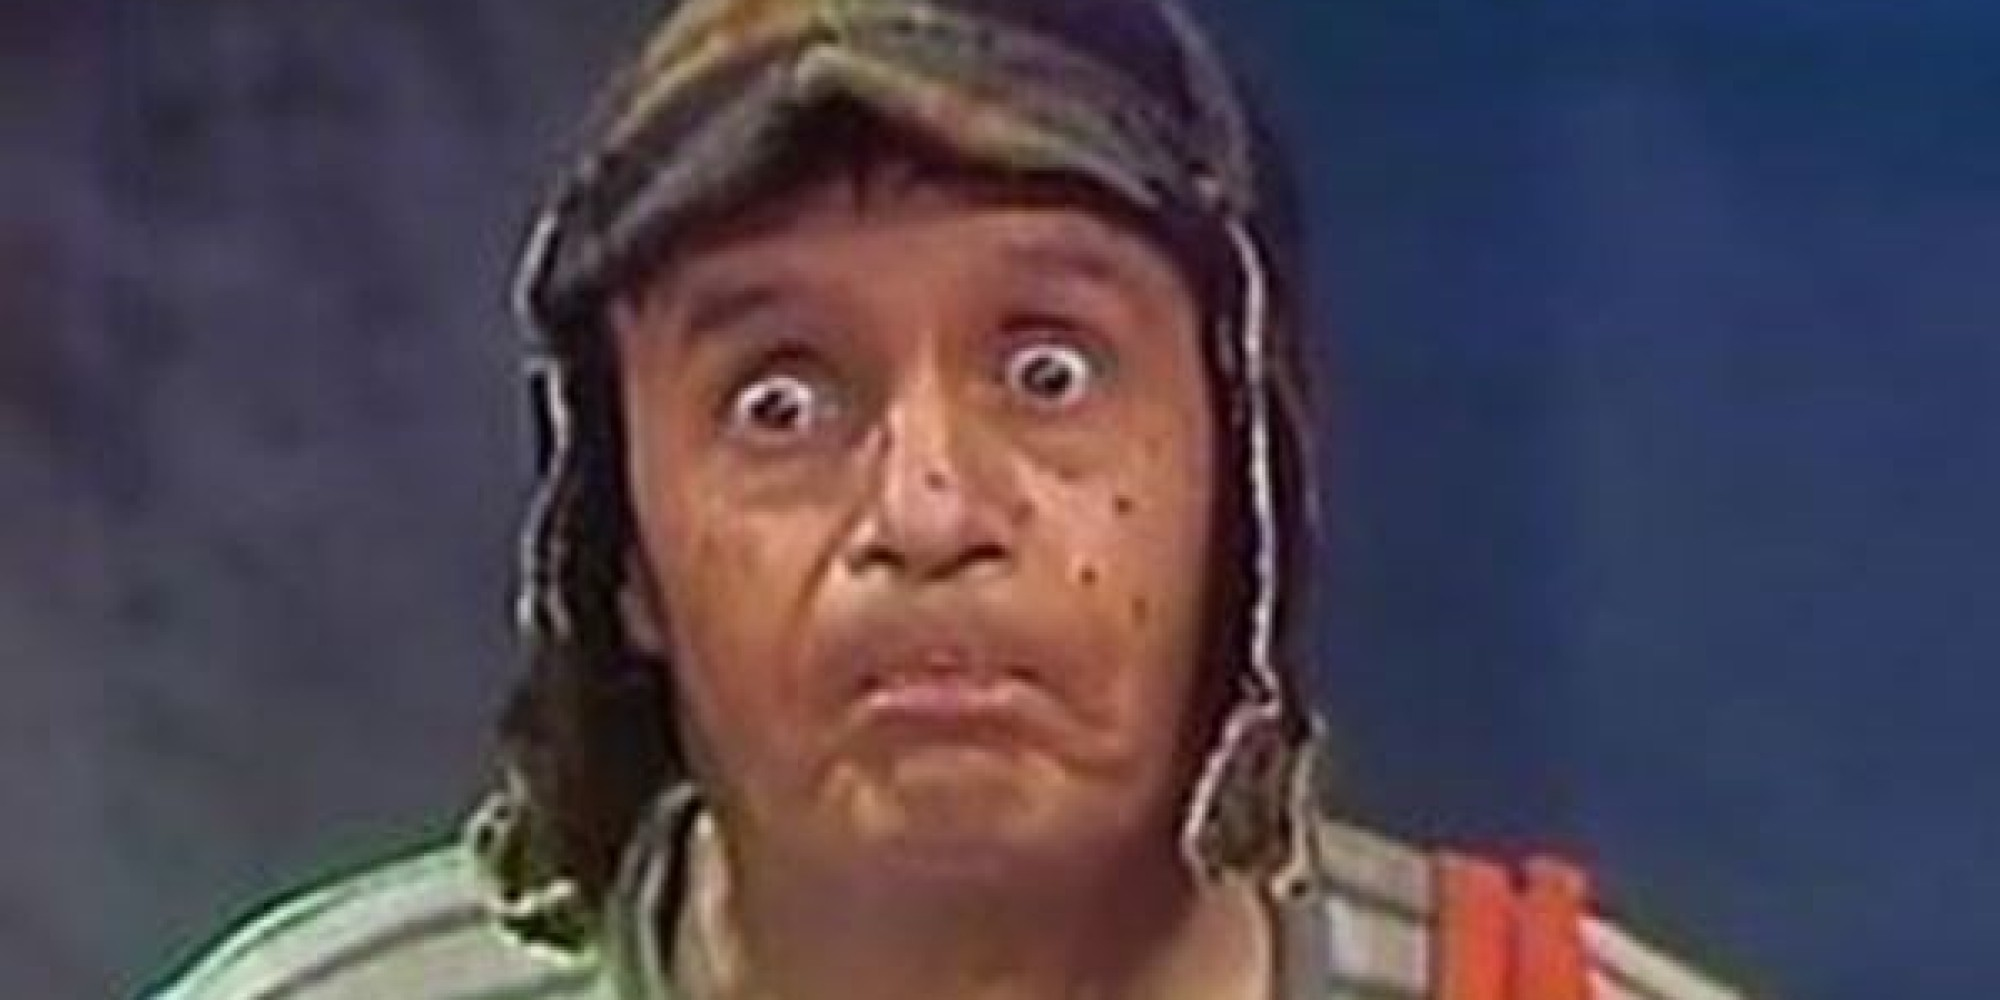 o-CHAVES-facebook.jpg